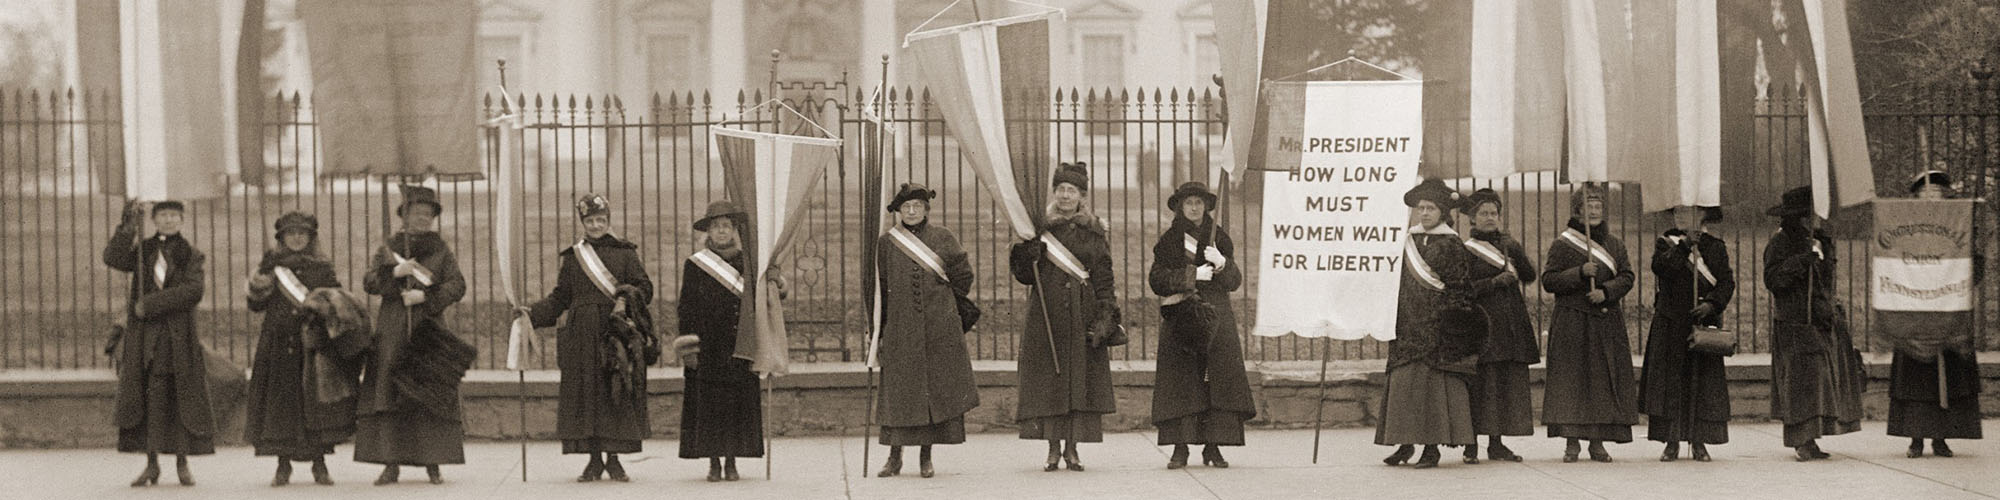 Women protesting outside of the white house in the early 1900s